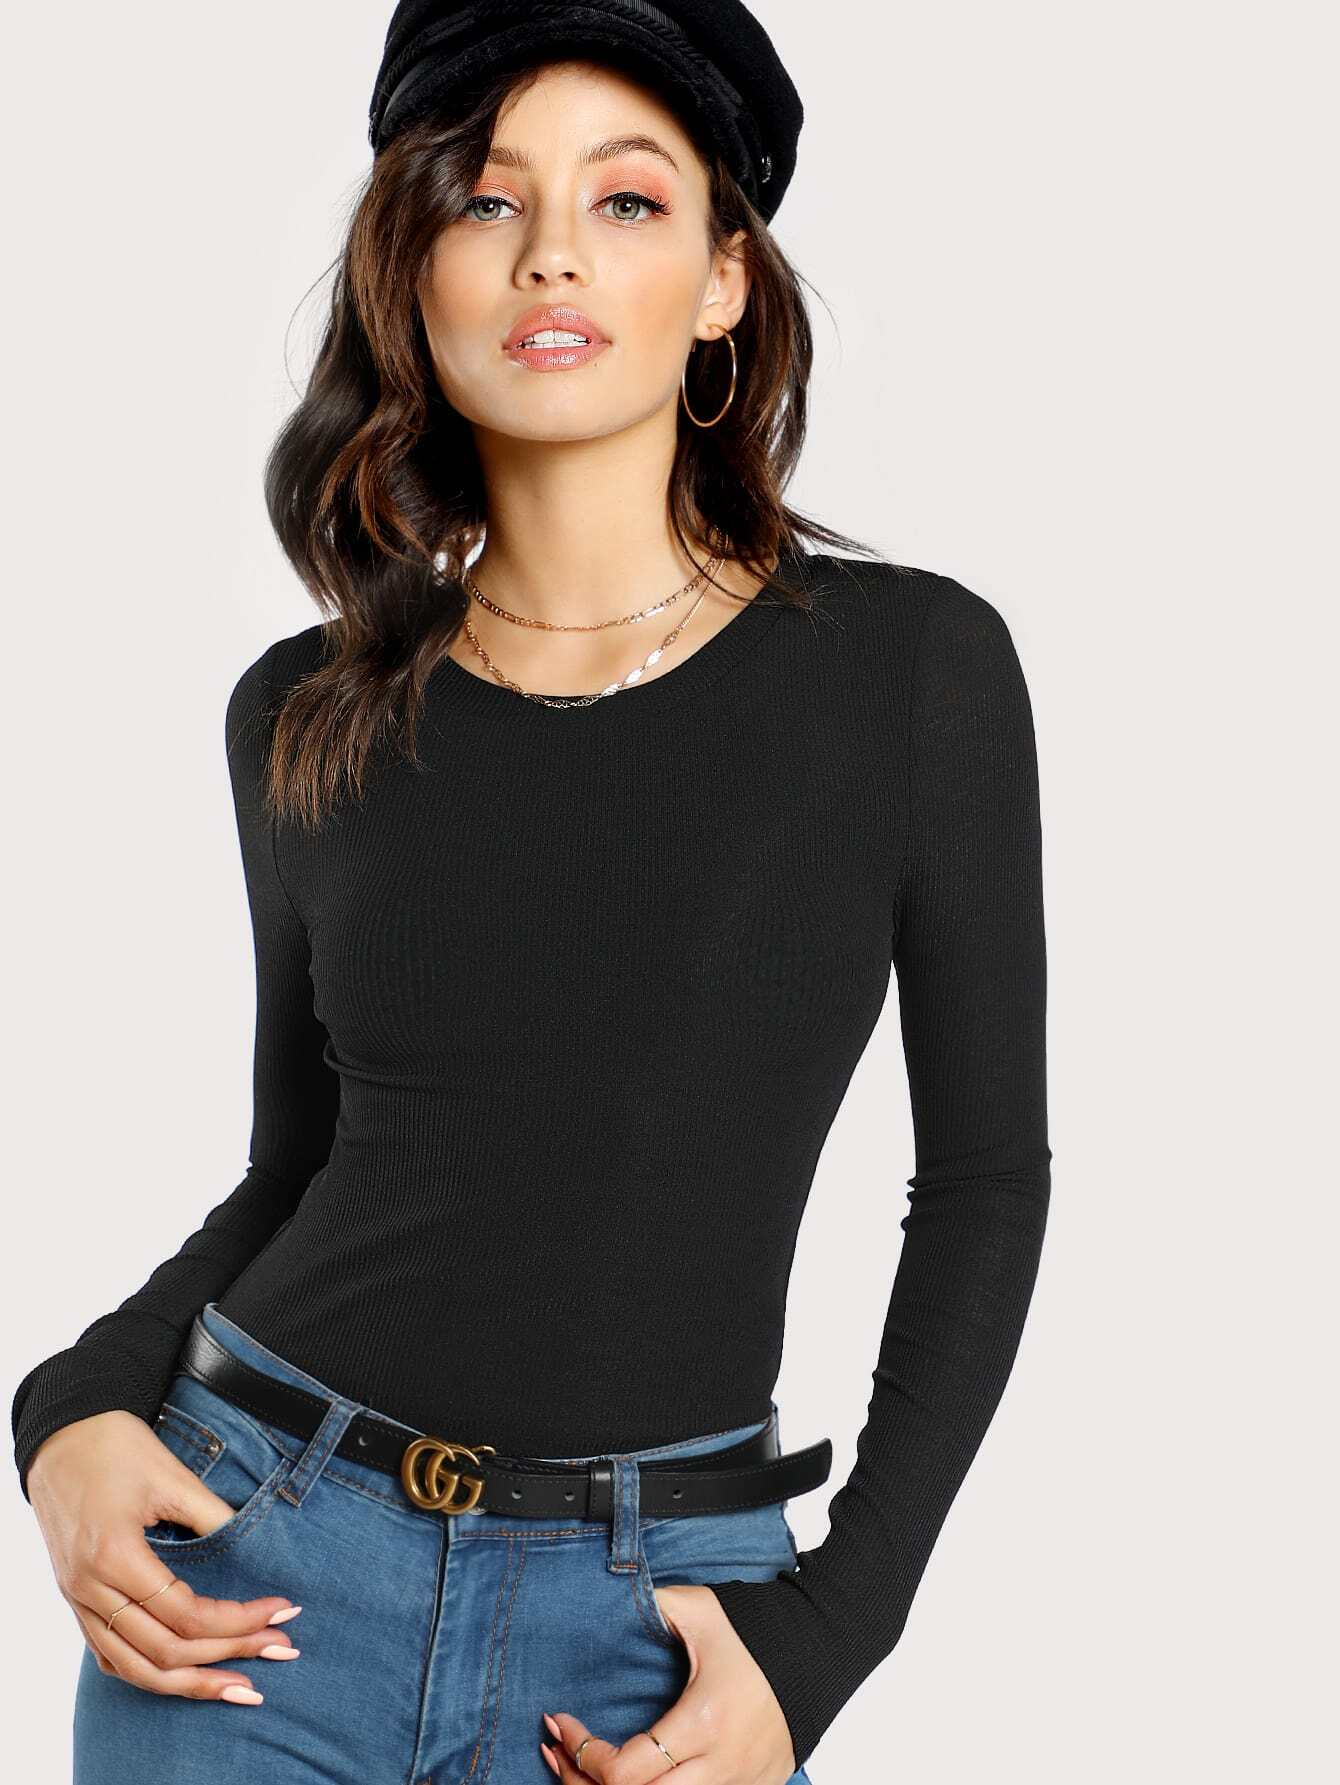 Laddering Detail Rib Knit Crop Top teemmc171025702